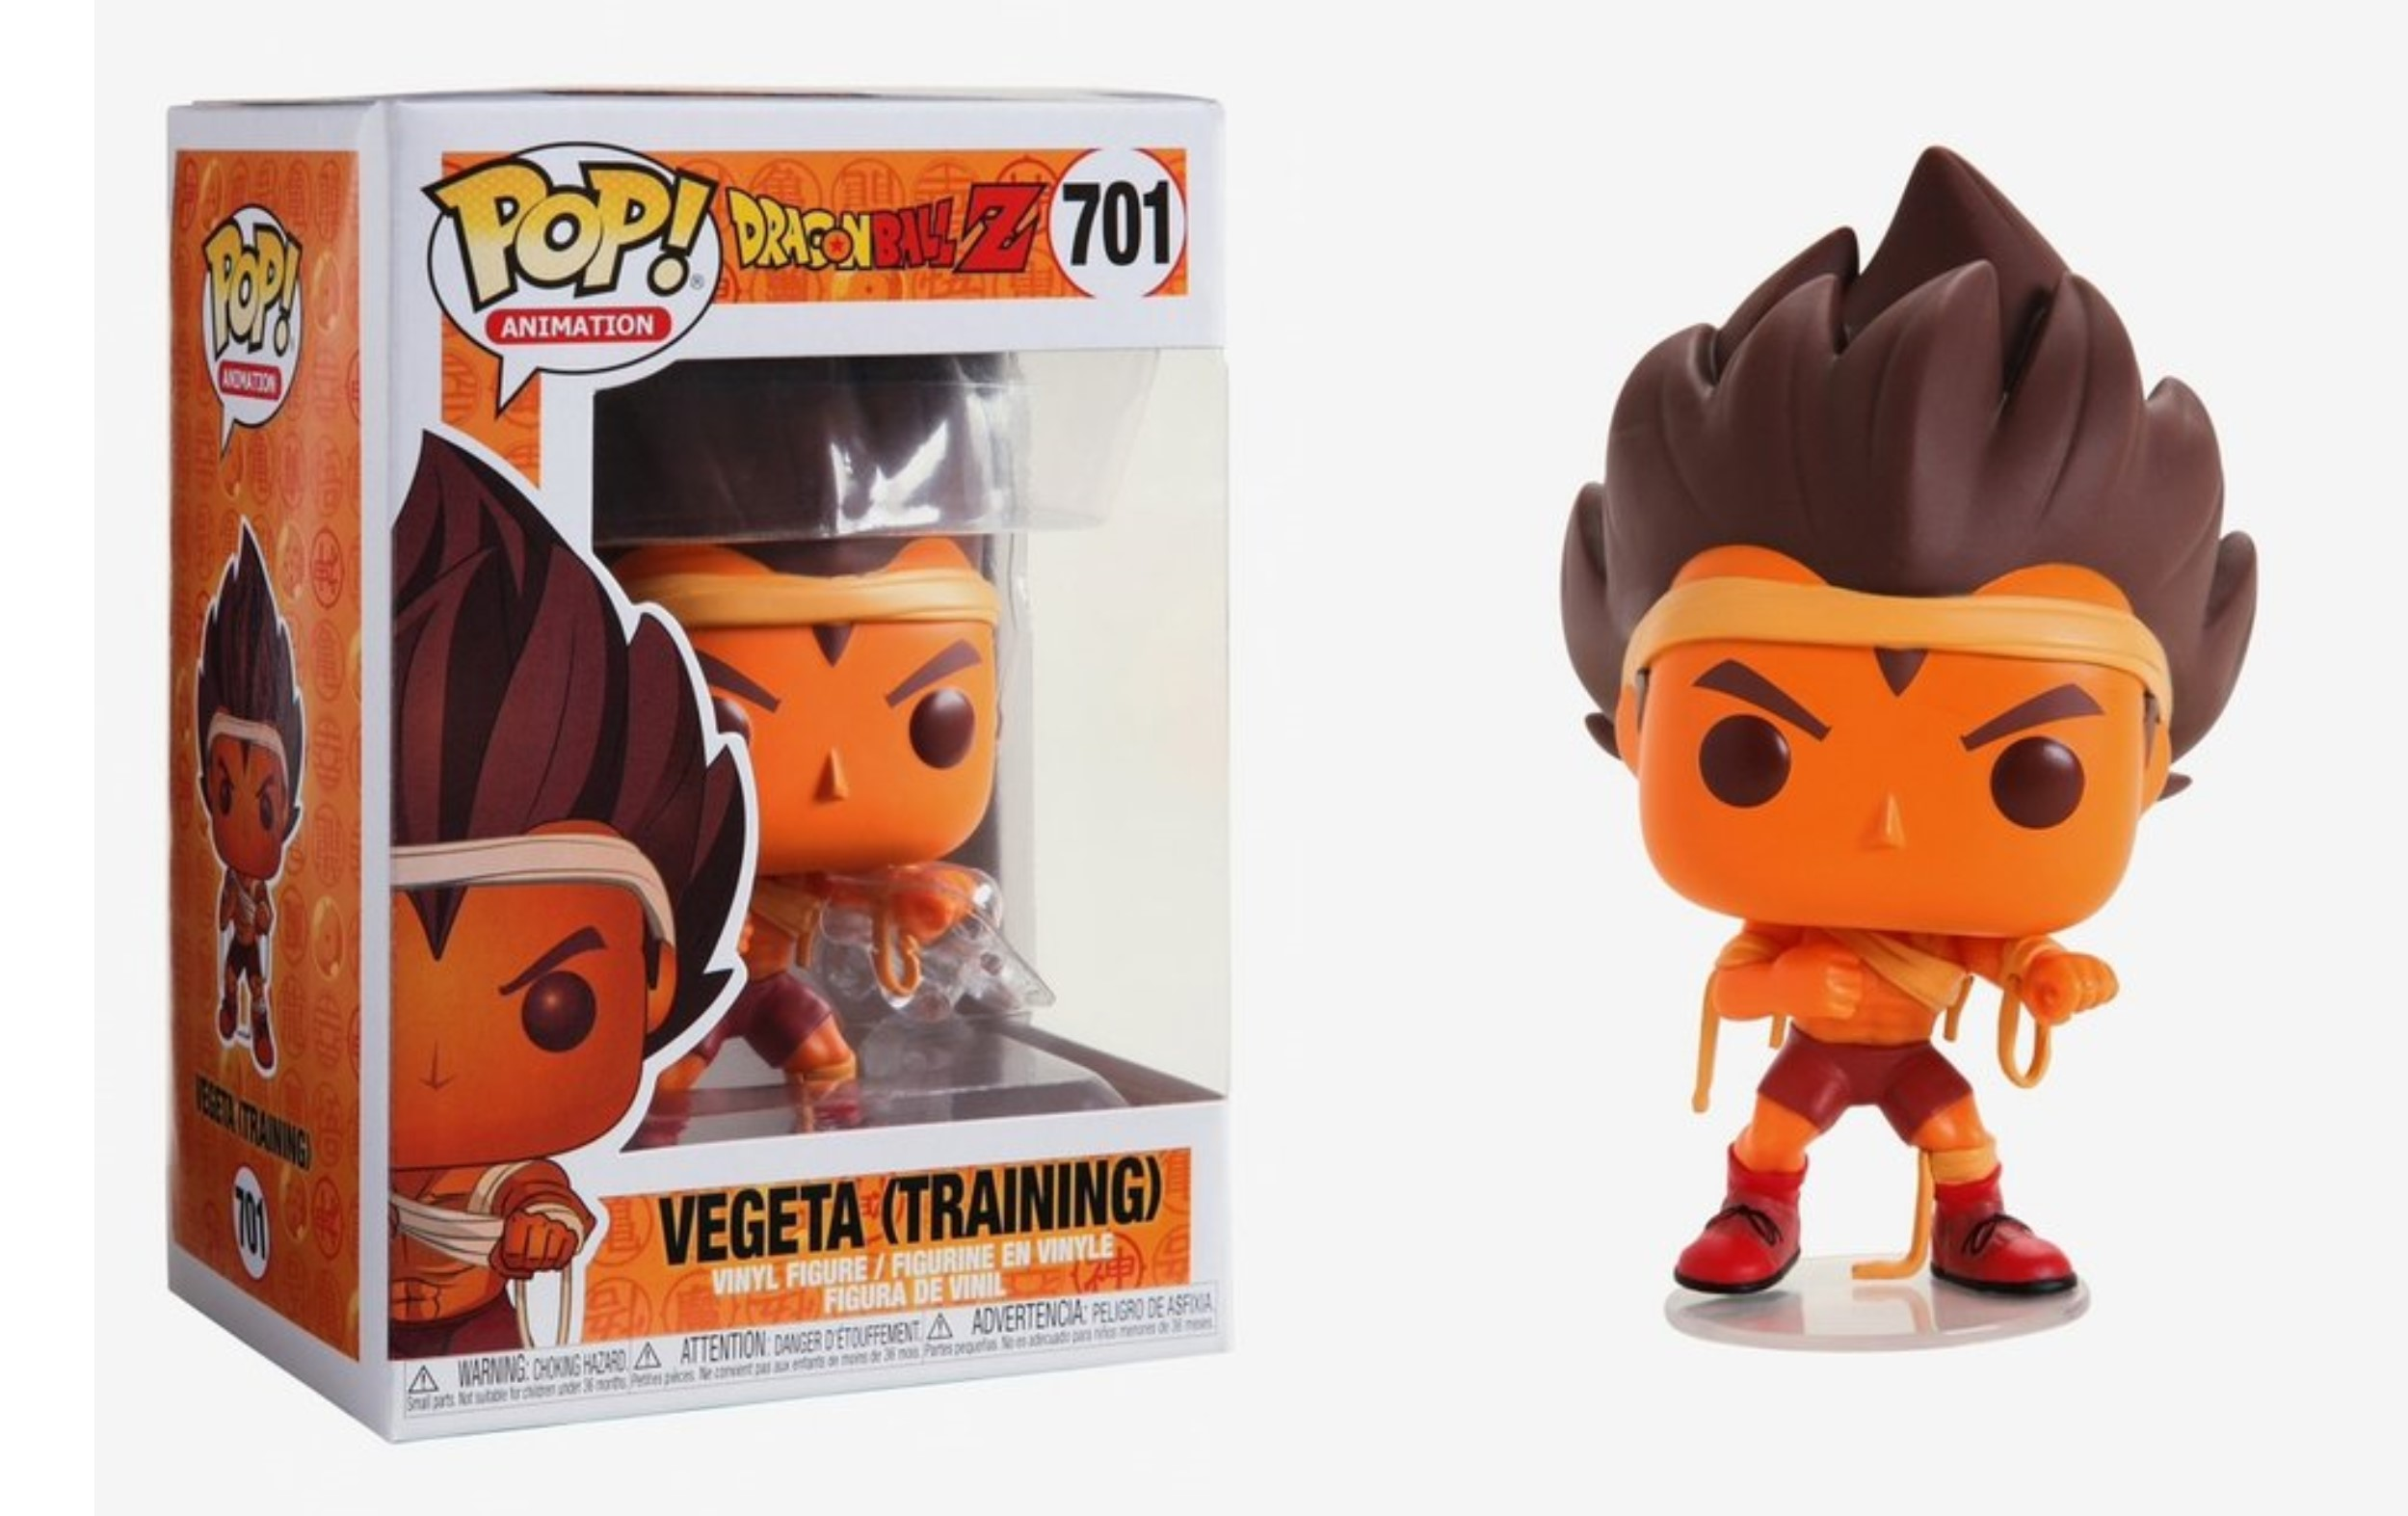 Dragonball Z Vegeta Training 701 Funko POP Vinyl Figure